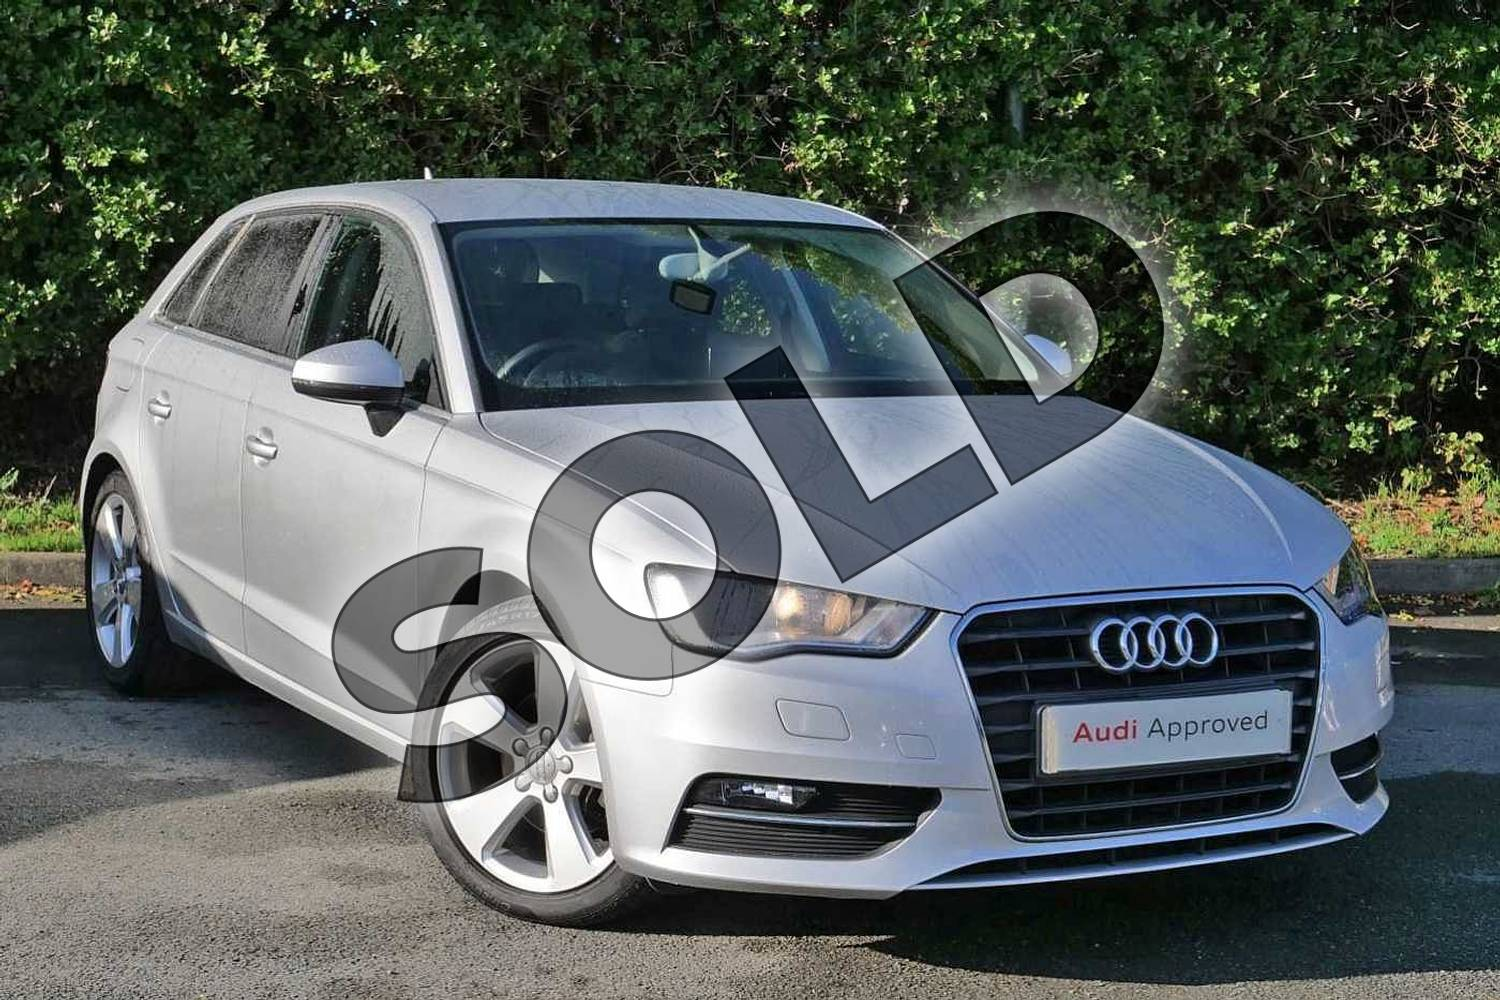 2013 Audi A3 Sportback 1.4 TFSI Sport 5dr in Ice Silver, metallic at Worcester Audi